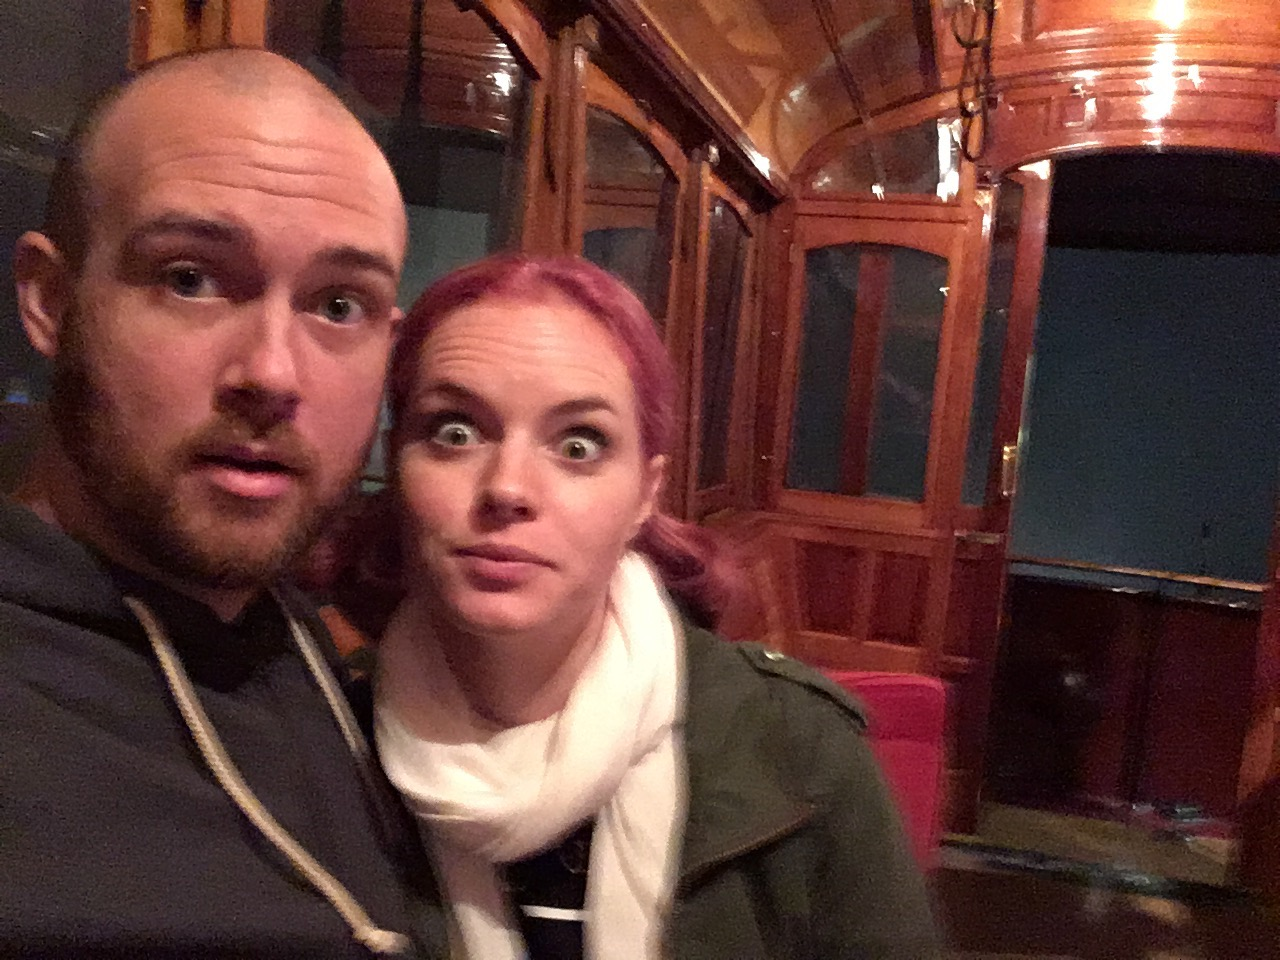 Just a couple of fuzzy weirdos goofing around in one of worst museums we found in New Zealand.